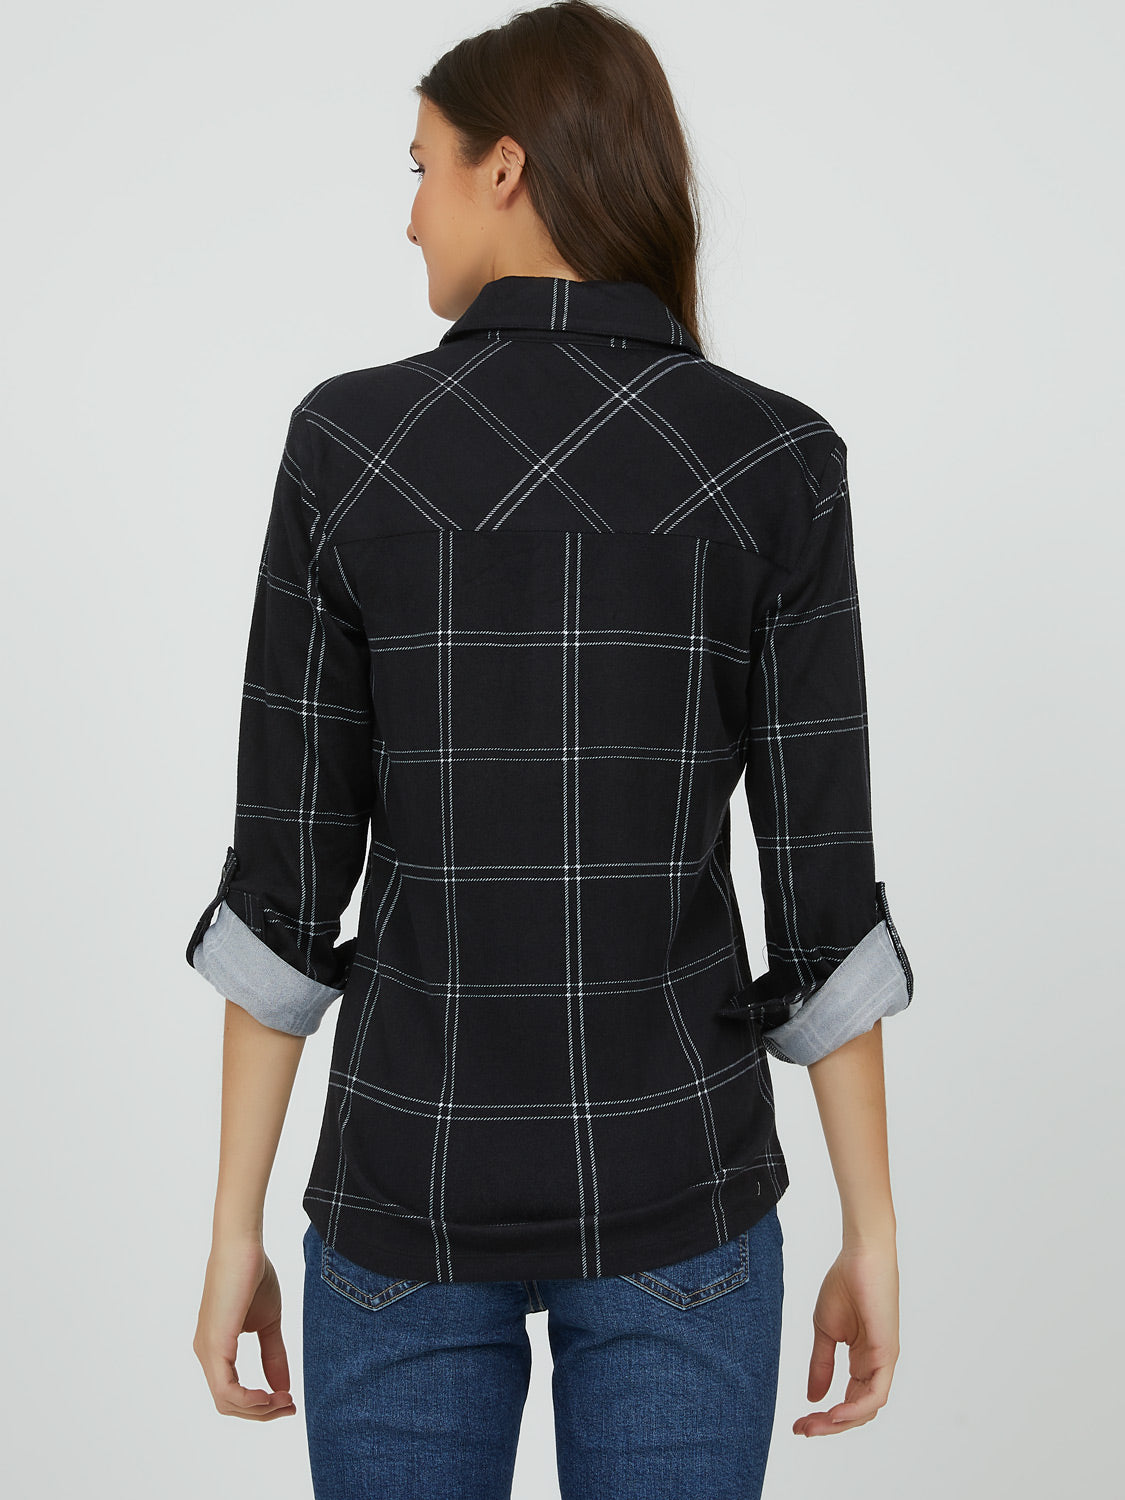 Rolled-Up Sleeve Plaid Blouse